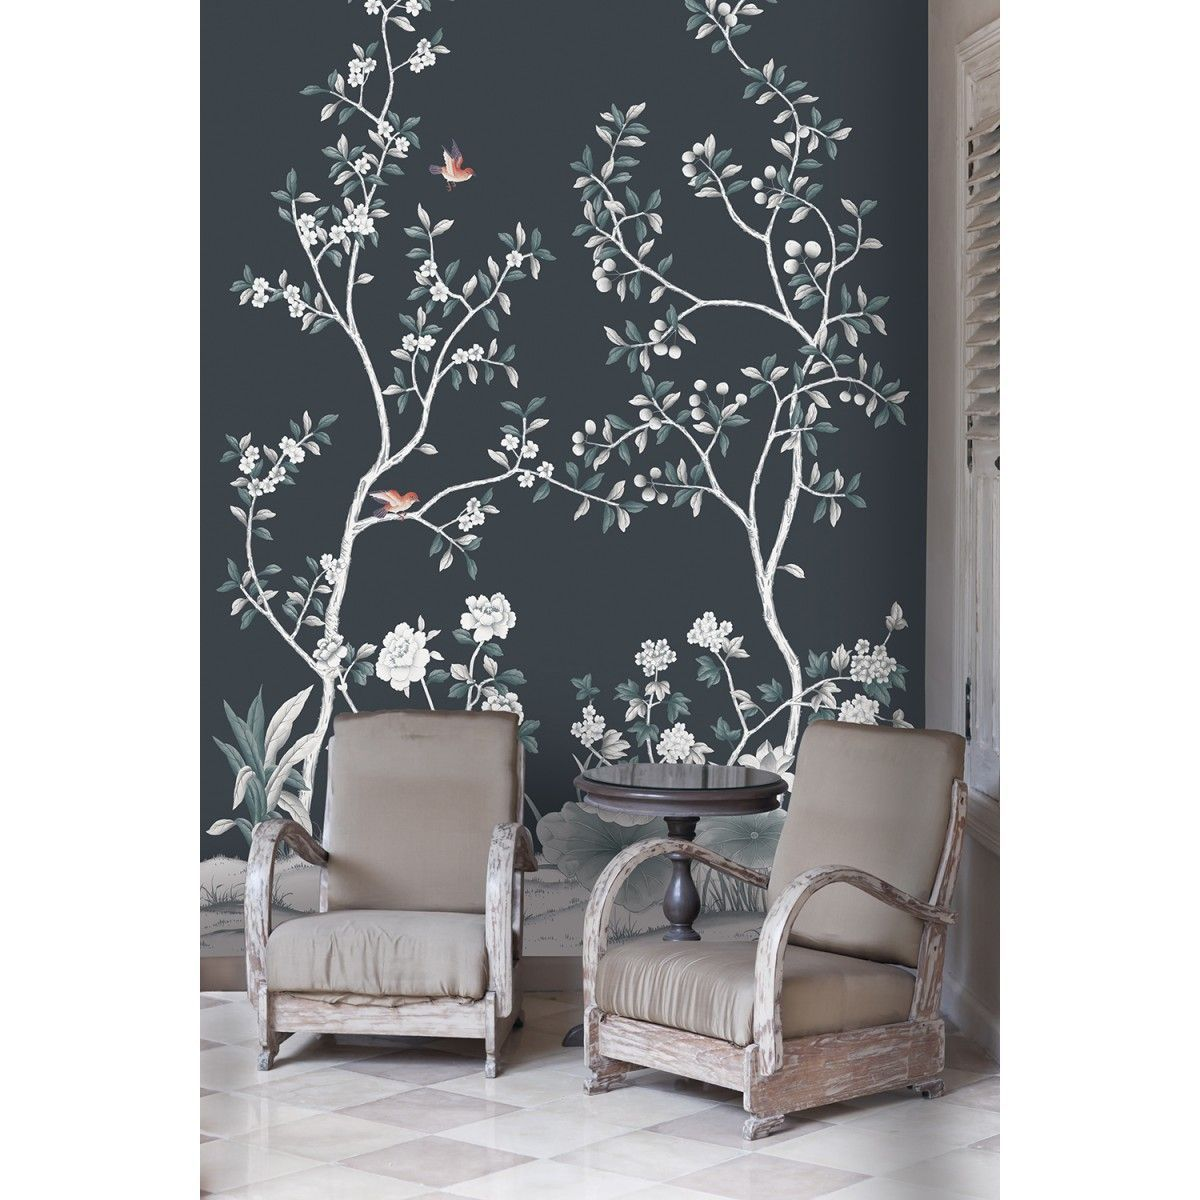 LILLY Tempaper Designs Accent walls in living room